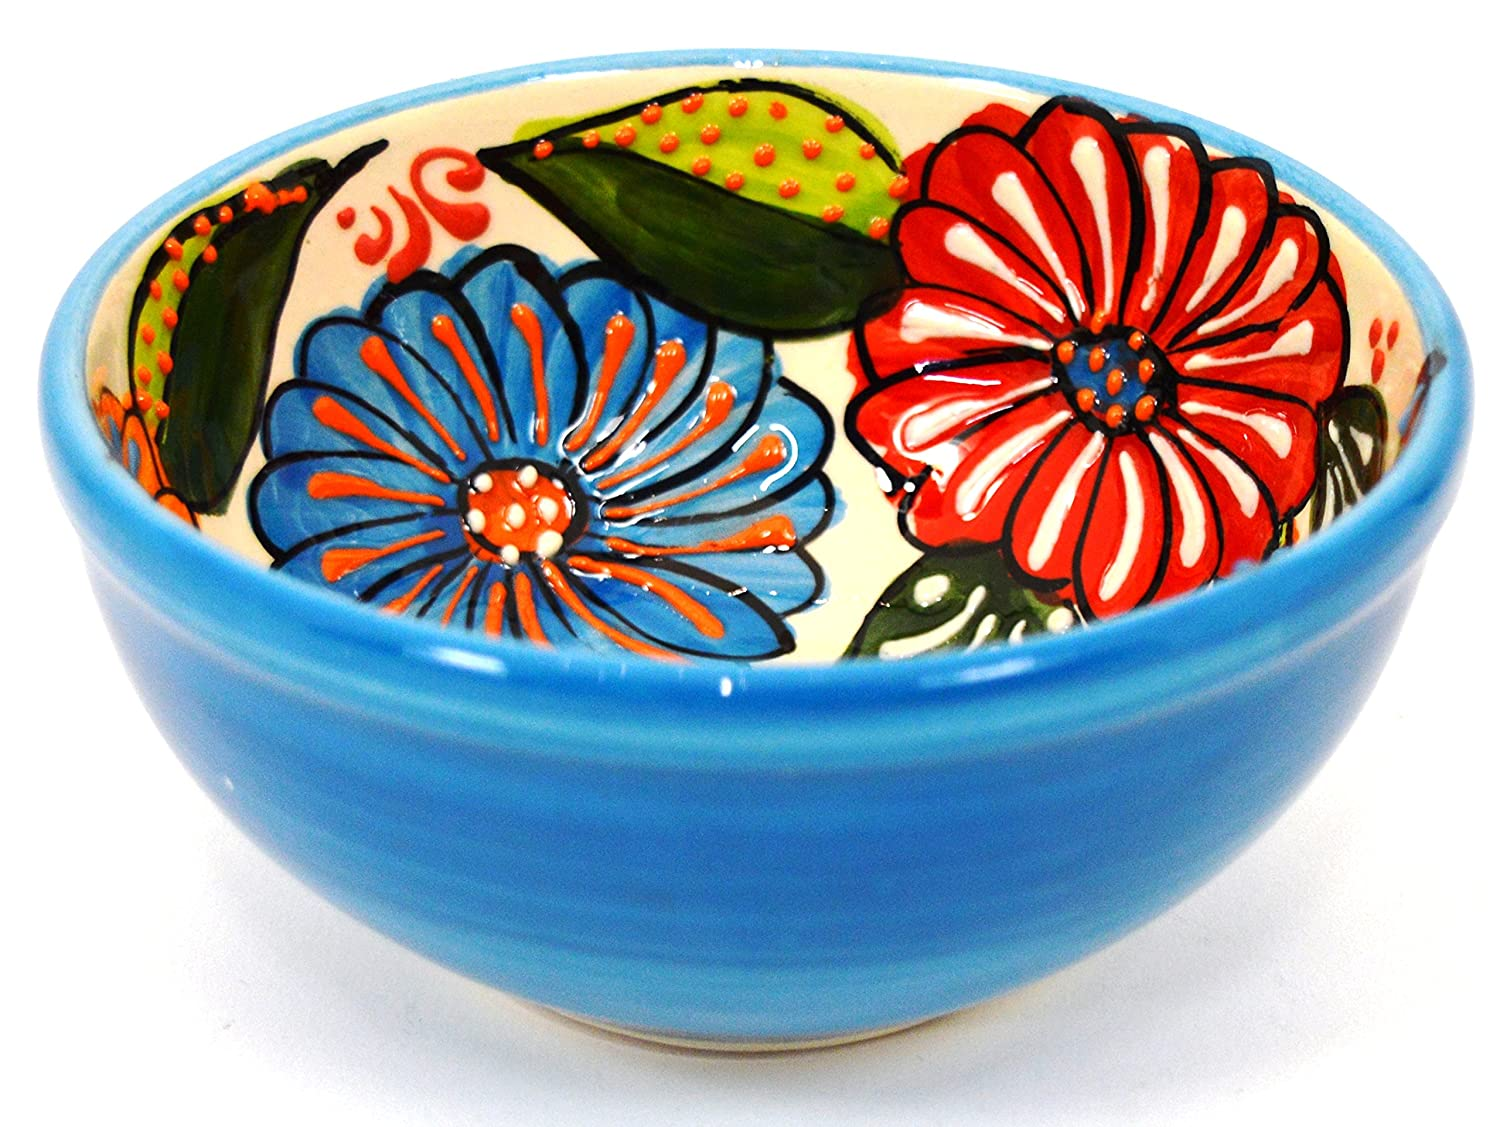 Ceramic Octagonal Tray, Handmade and Handpainted in Flower Decoration. 7,68' x 4,92' x 0,98' (Light Blue)